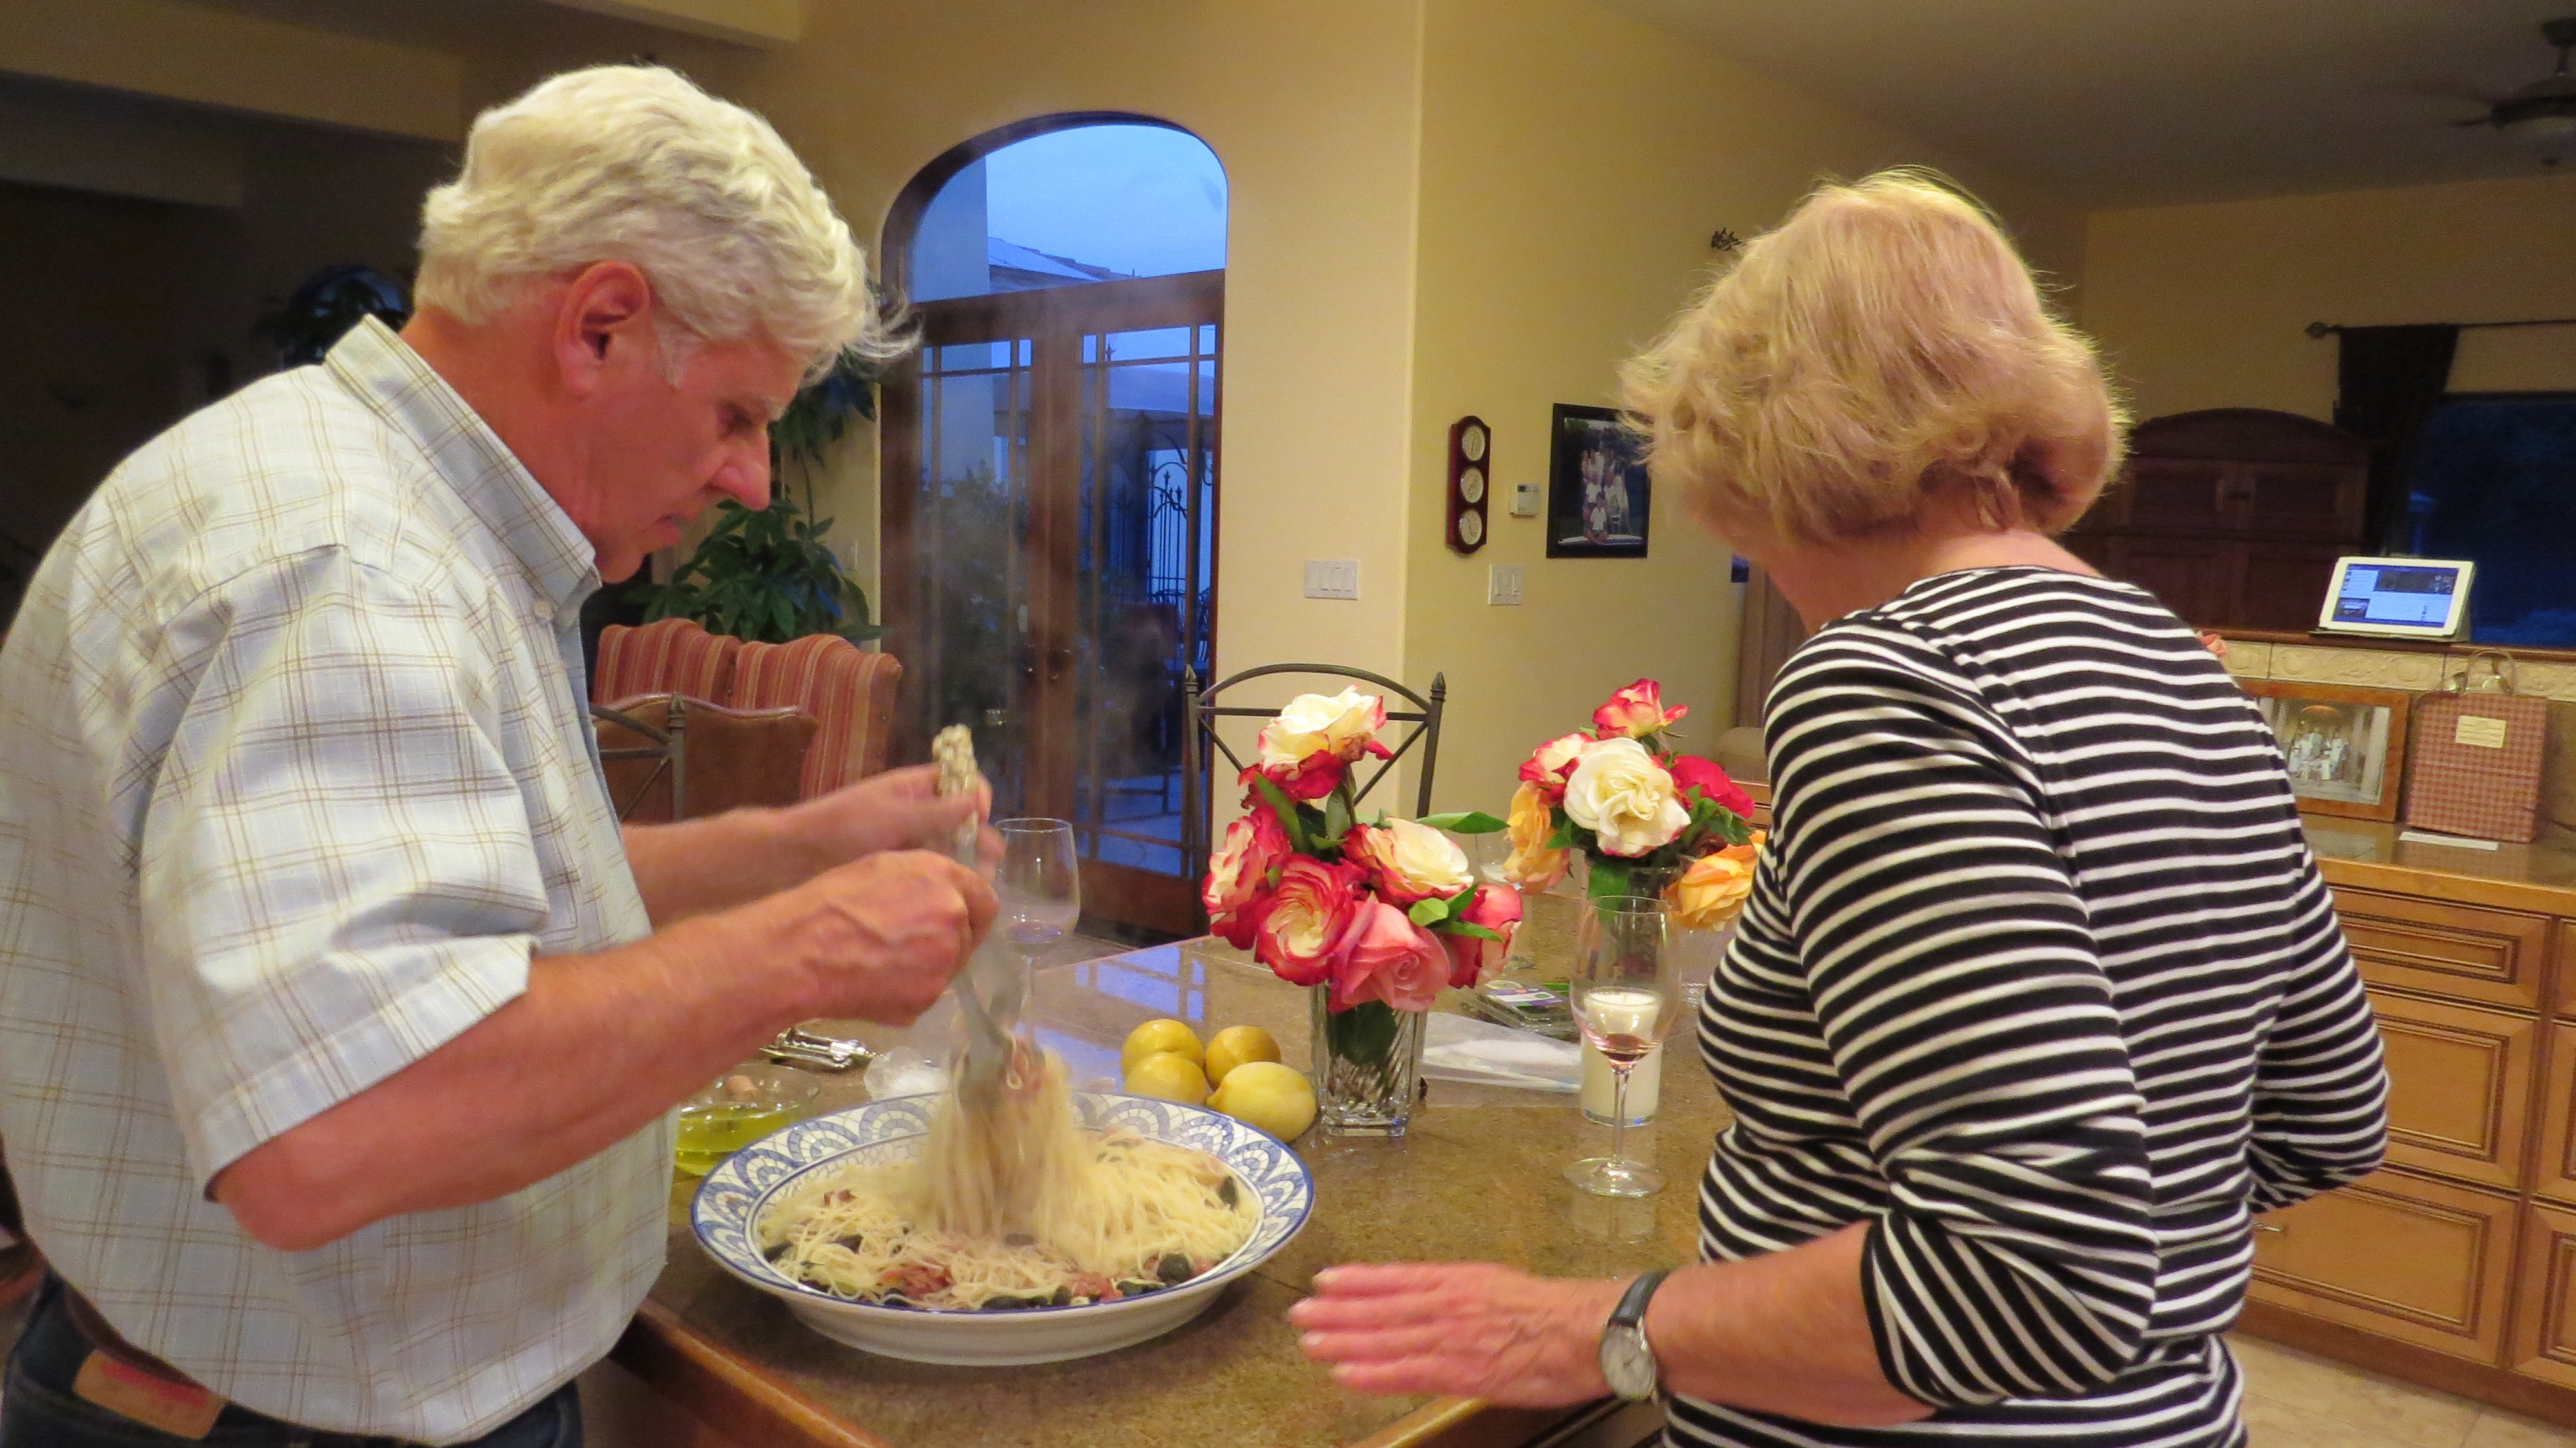 Susan made the pasta topping while David boiled the pasta (perfect) and tossed it together.